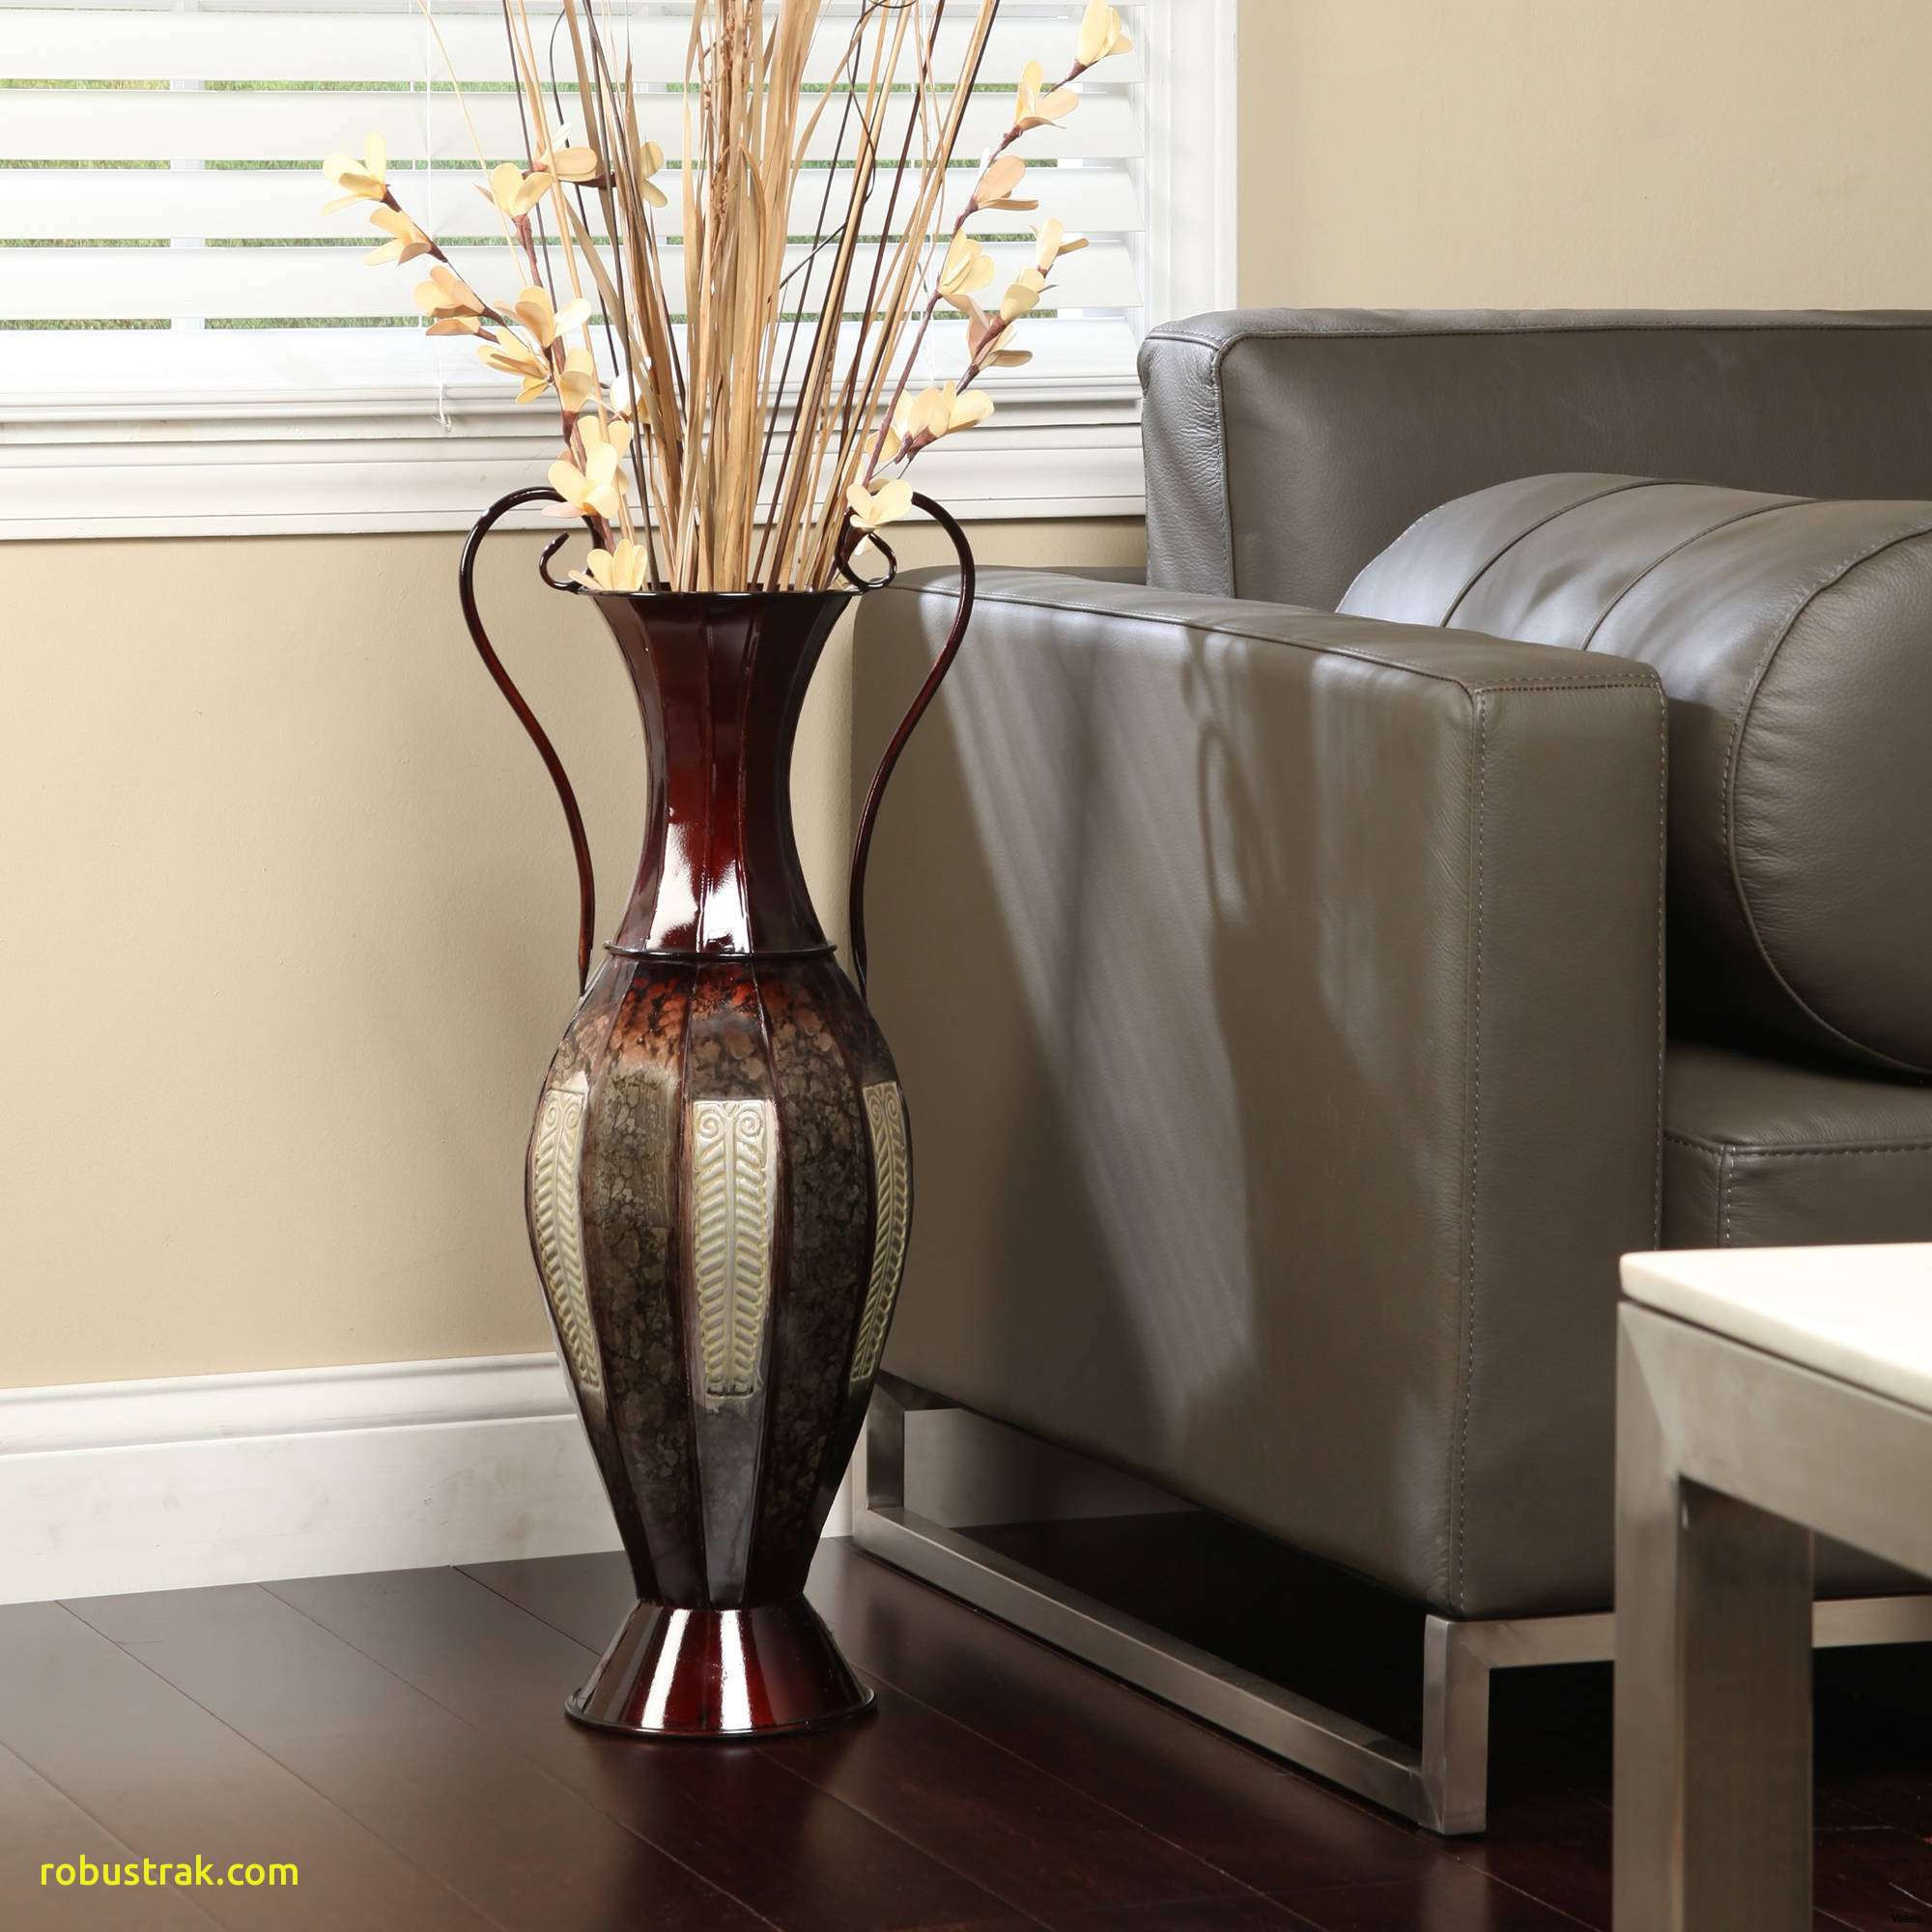 decorative lighted branches for vases of floor vase with branches photograph new floor vase with branches within floor vase with branches photograph new floor vase with branches